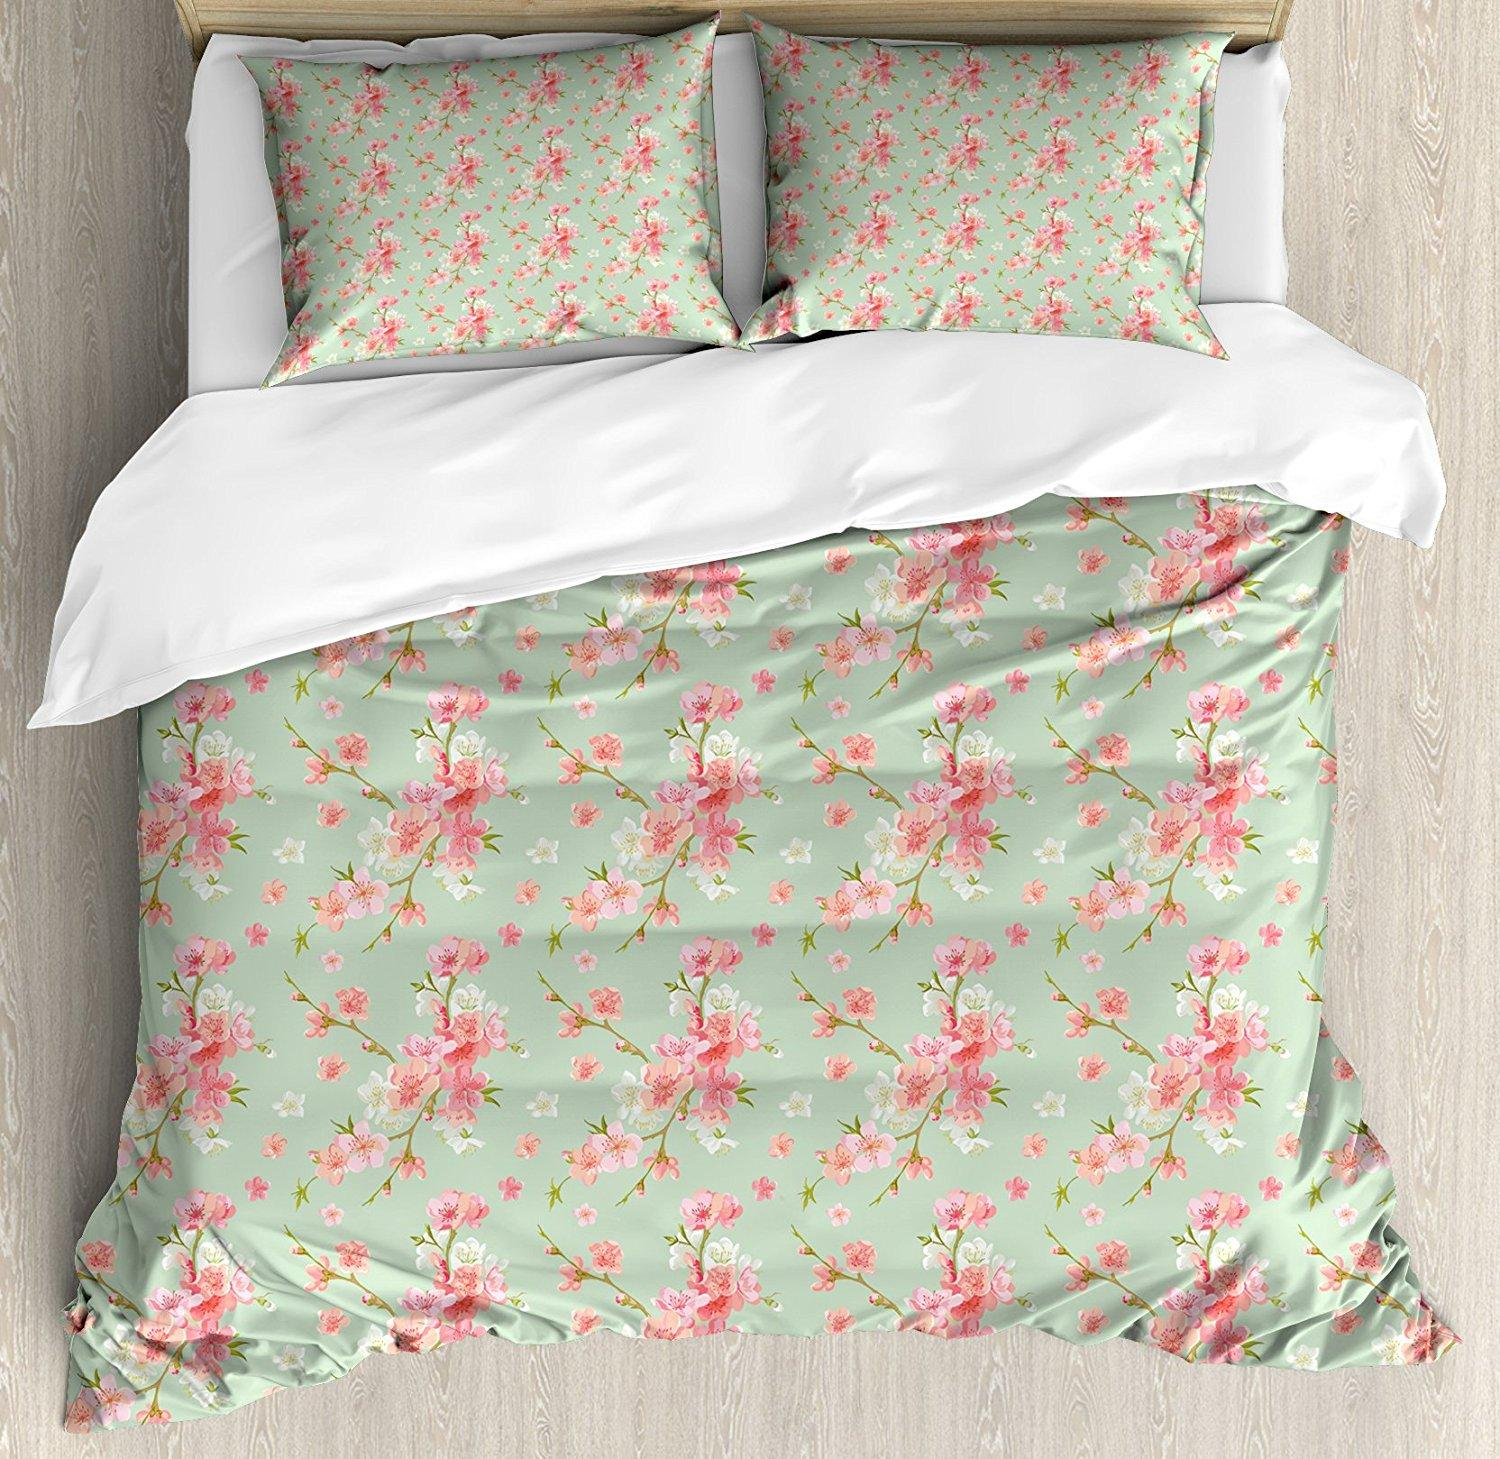 Marvelous Shabby Chic Duvet Cover Set Flowers Of Spring Flourishing Nature Branches With Vintage Inspirations 4 Piece Bedding Set Home Remodeling Inspirations Basidirectenergyitoicom